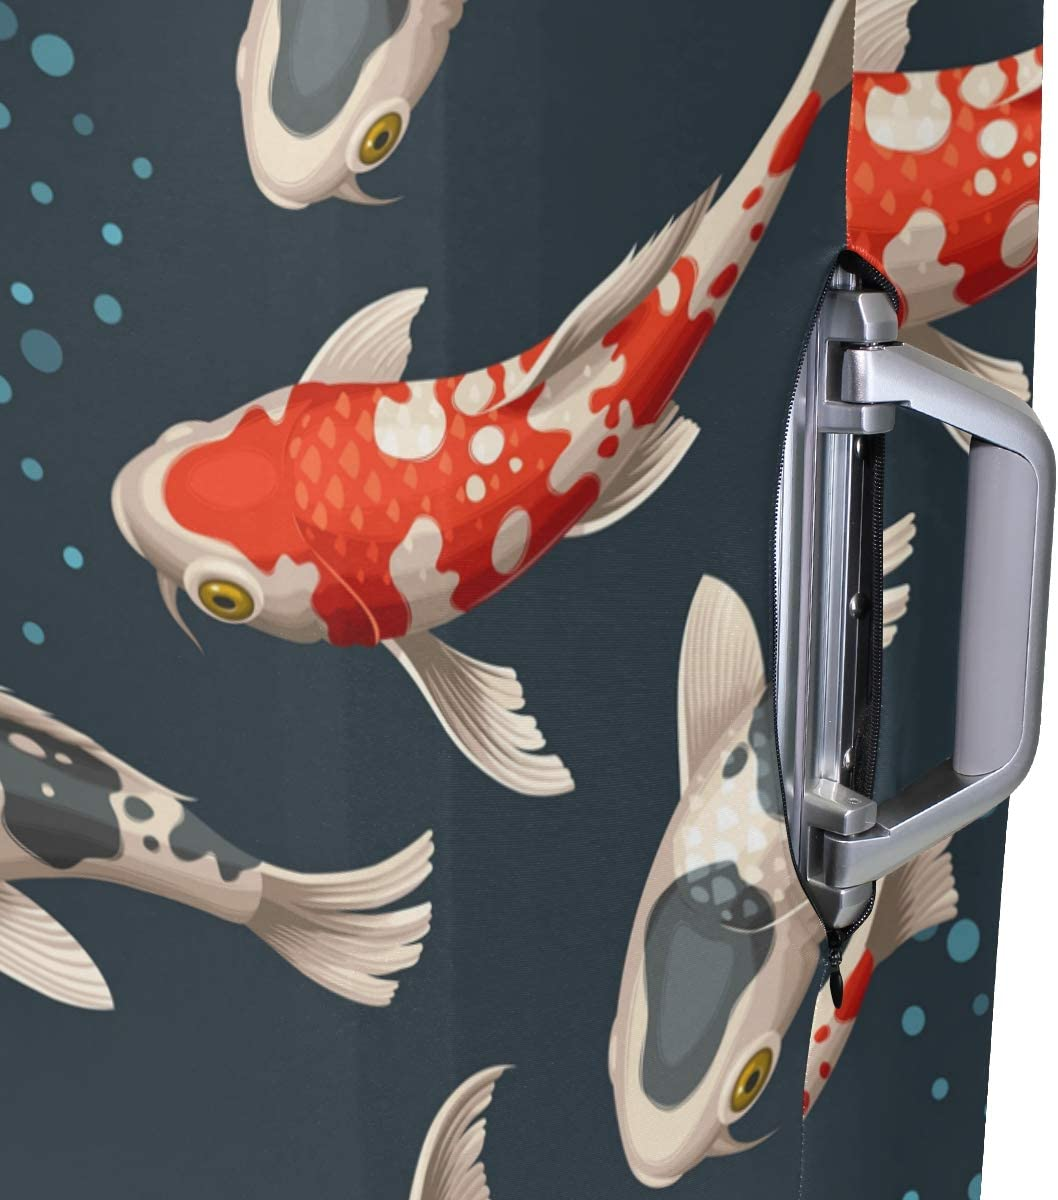 GIOVANIOR Koi Carp Luggage Cover Suitcase Protector Carry On Covers